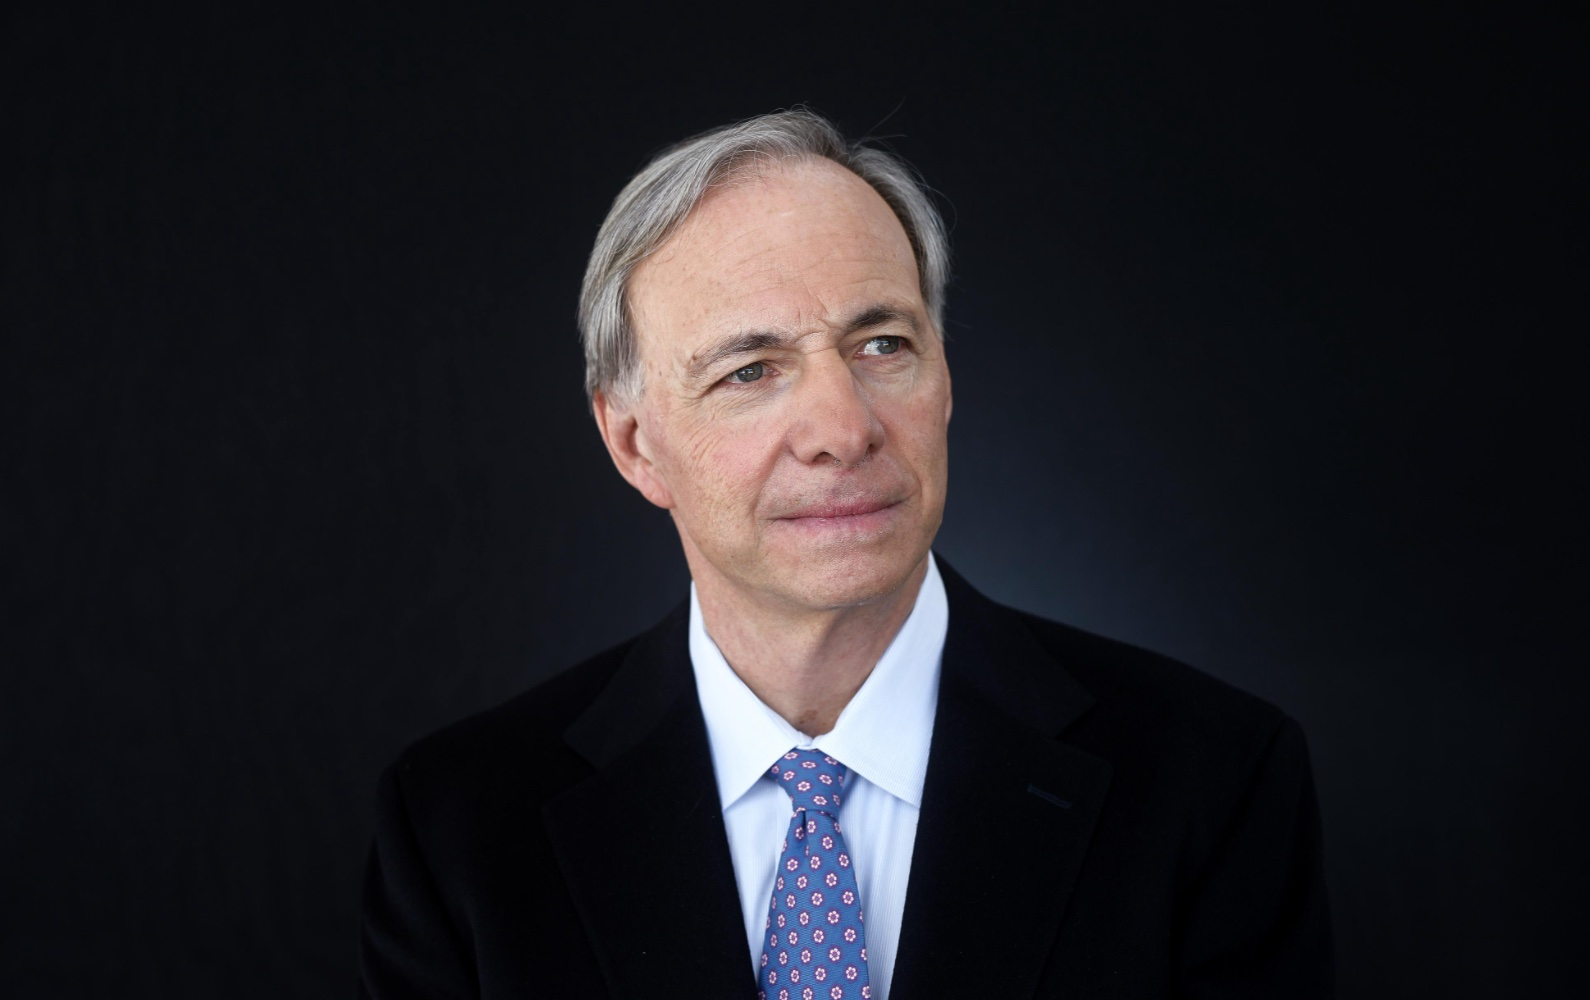 Bridgewater Associates, world's largest hedge fund, now owns NIO stock-CnTechPost